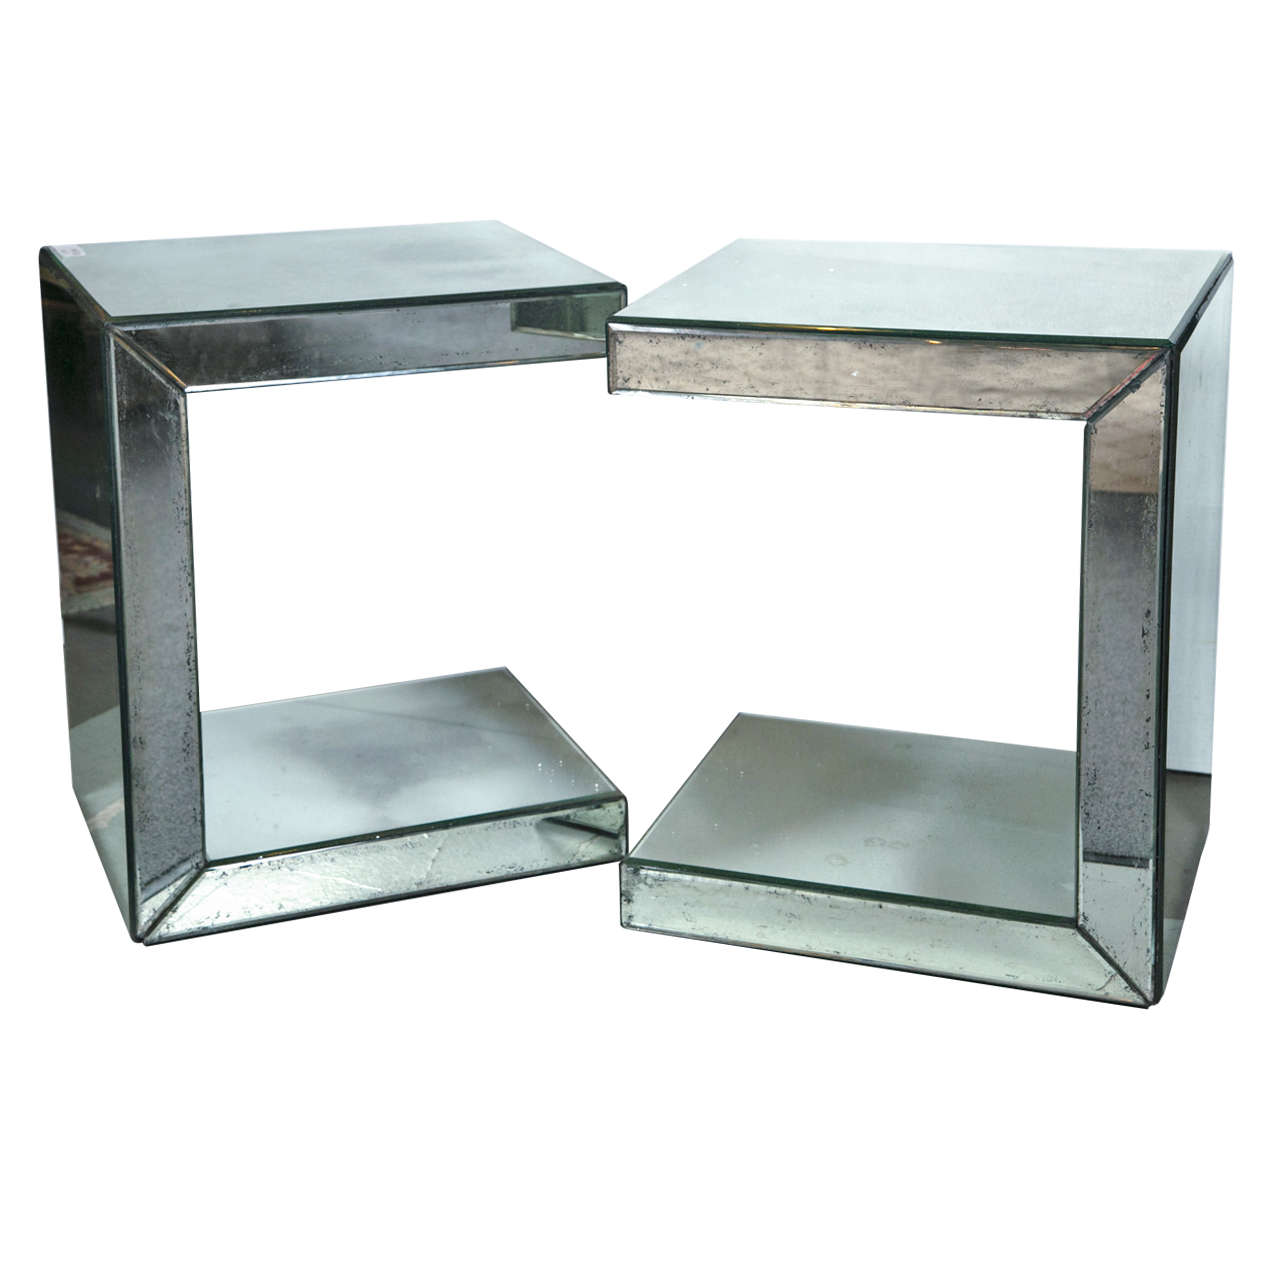 Pair of hollywood regency style c shaped mirrored end tables for sale